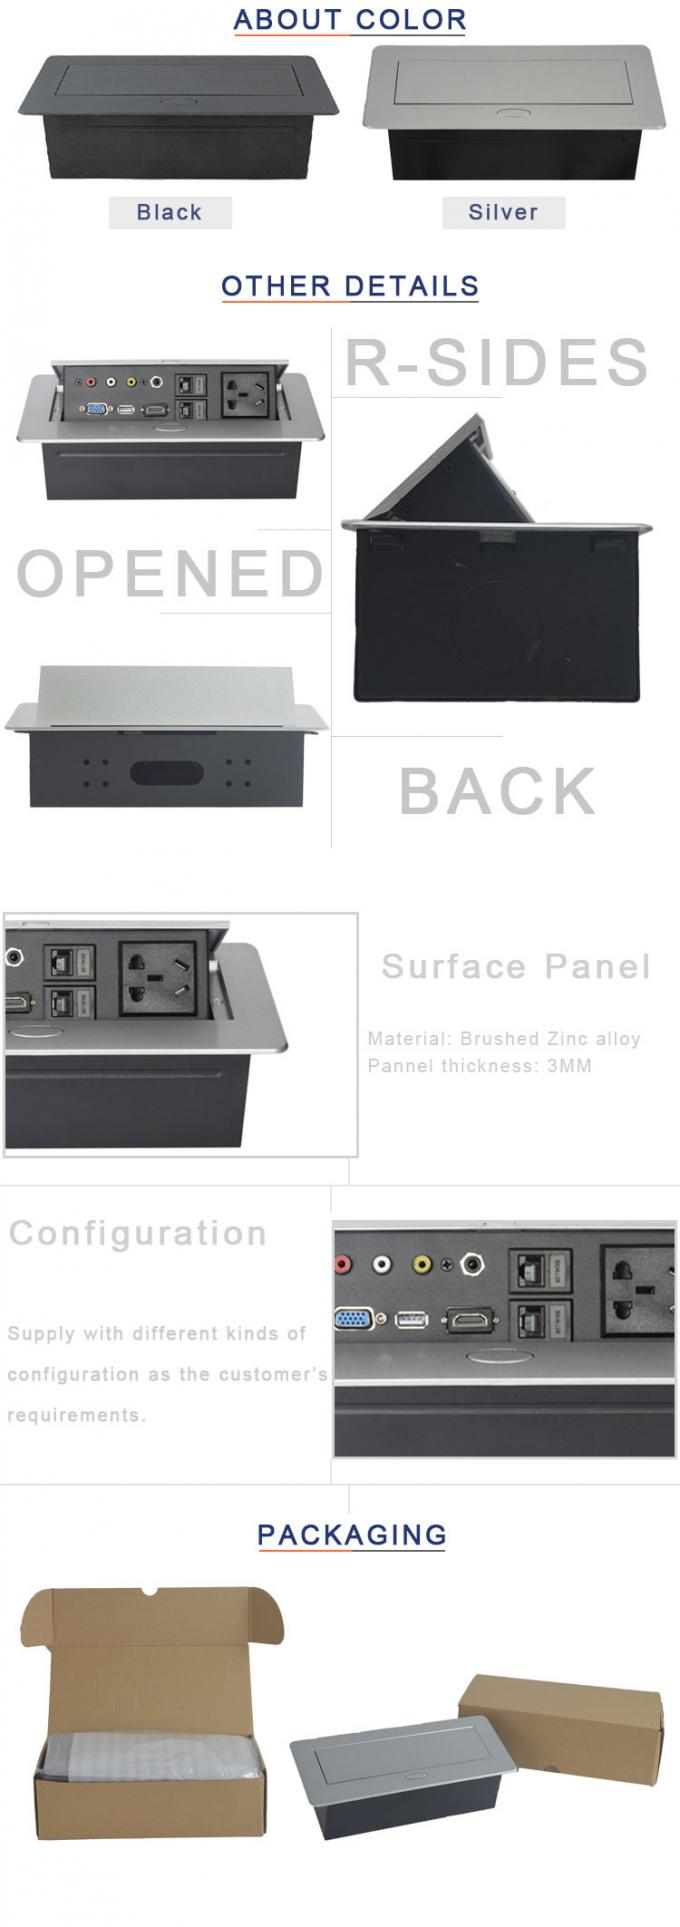 3-7 Days Delivery Time Zinc Alloy Material Tabletop Hidden Connector Oval Corner With VGA Interface